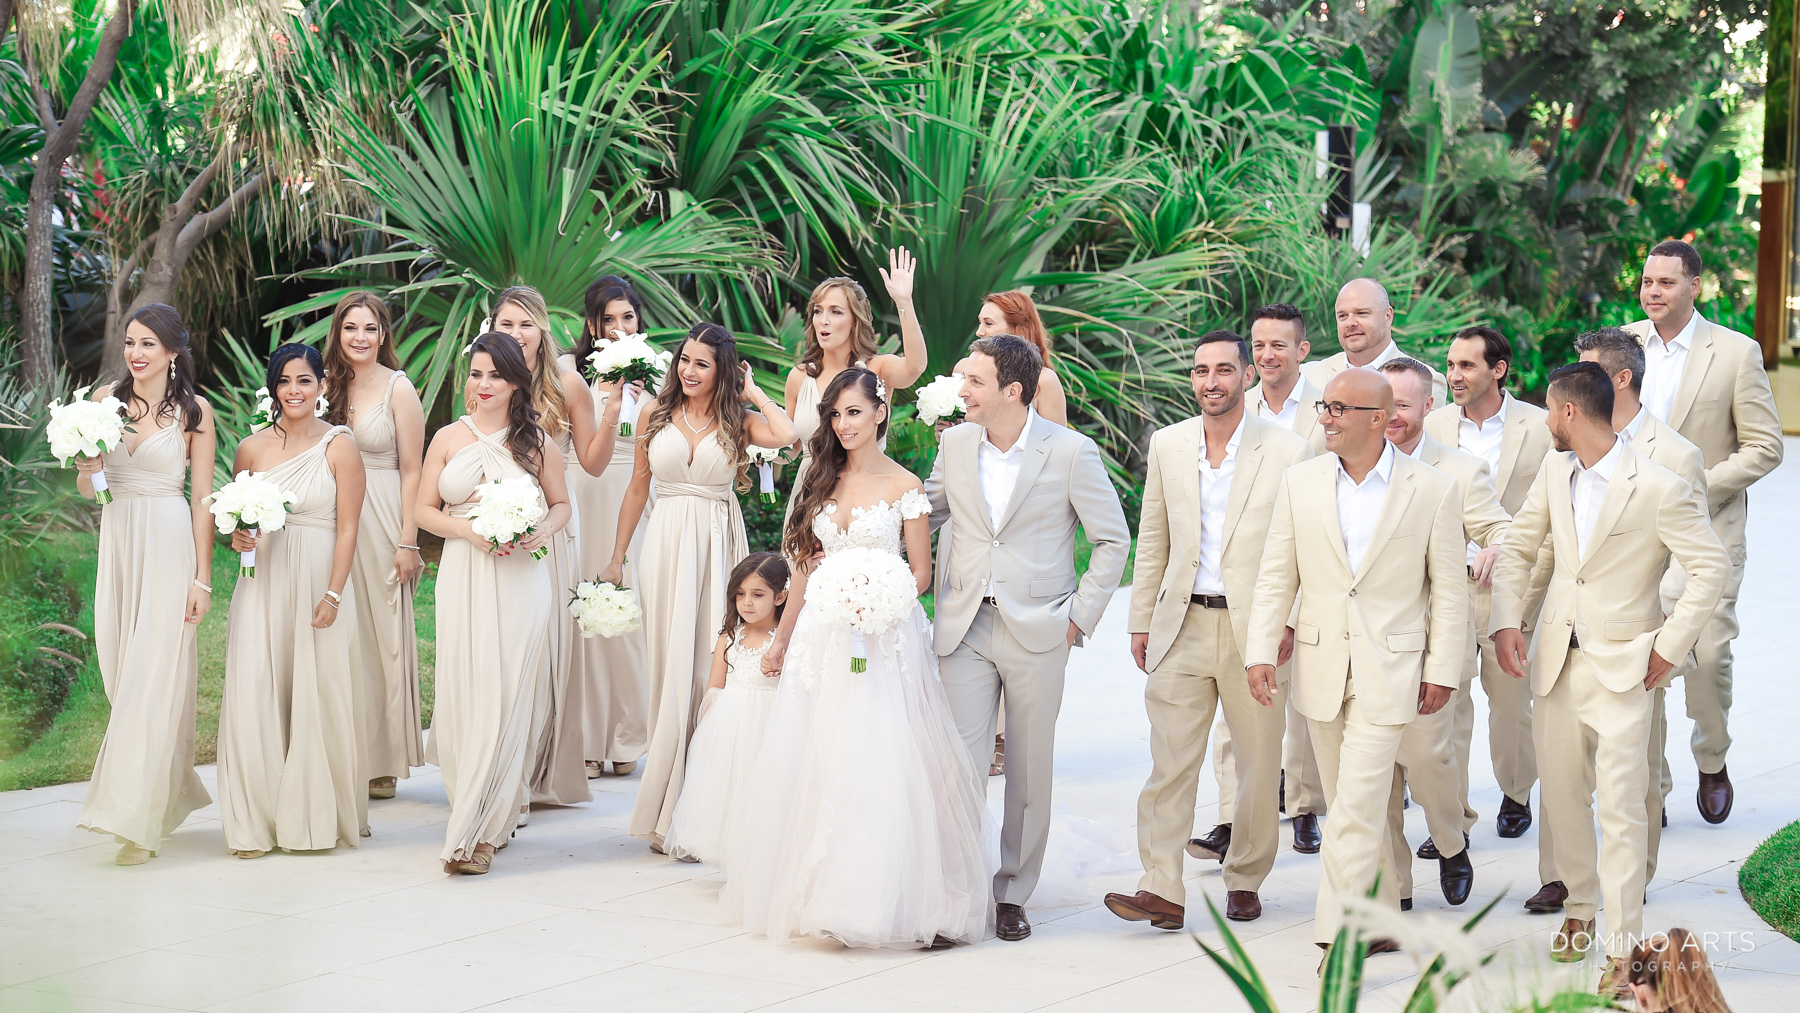 Fun wedding bridal party and Romantic wedding photos at Faena Hotel